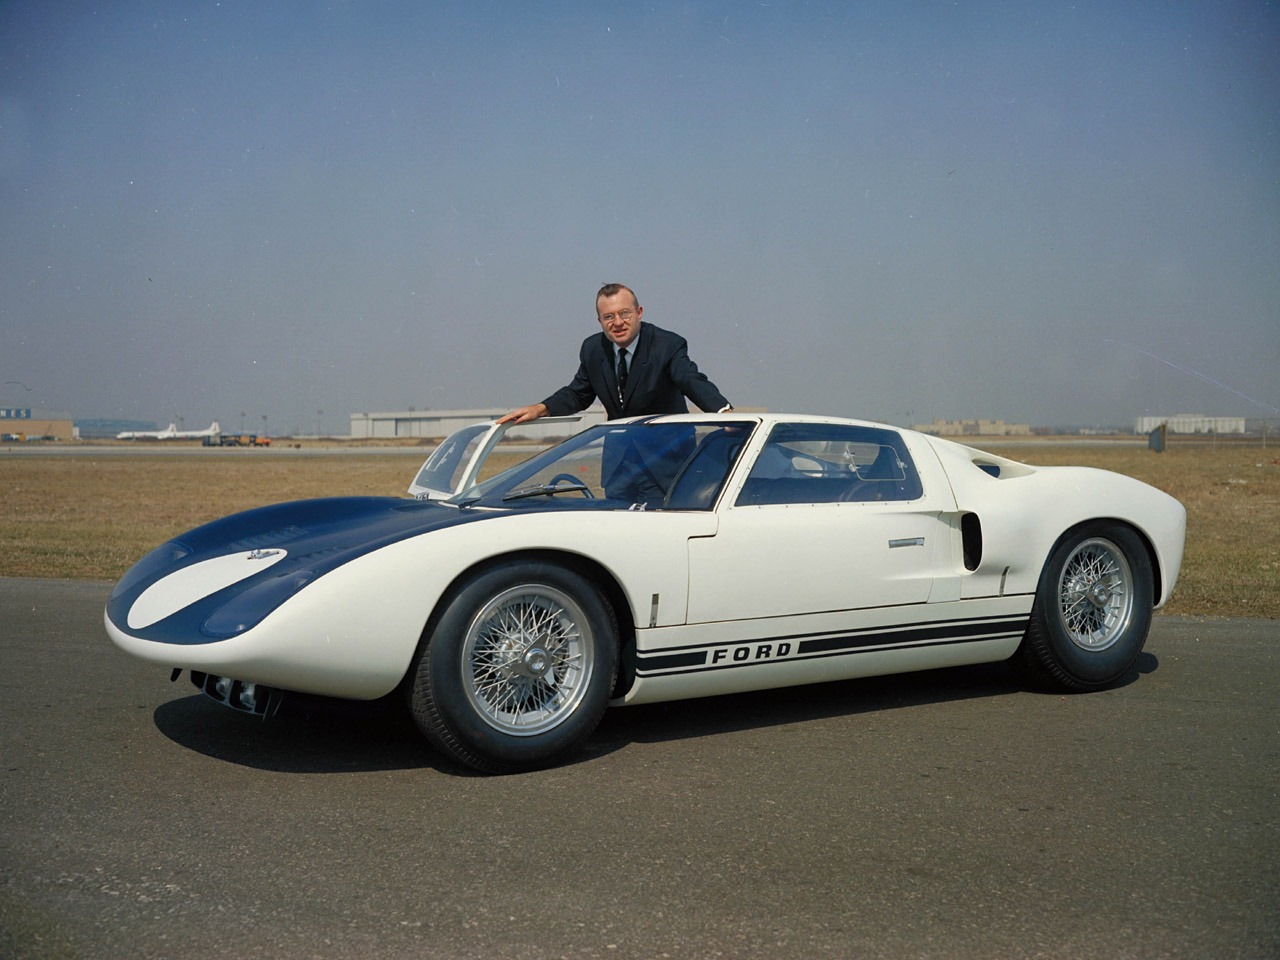 Ford Gt40 Concept 1964 Old Concept Cars